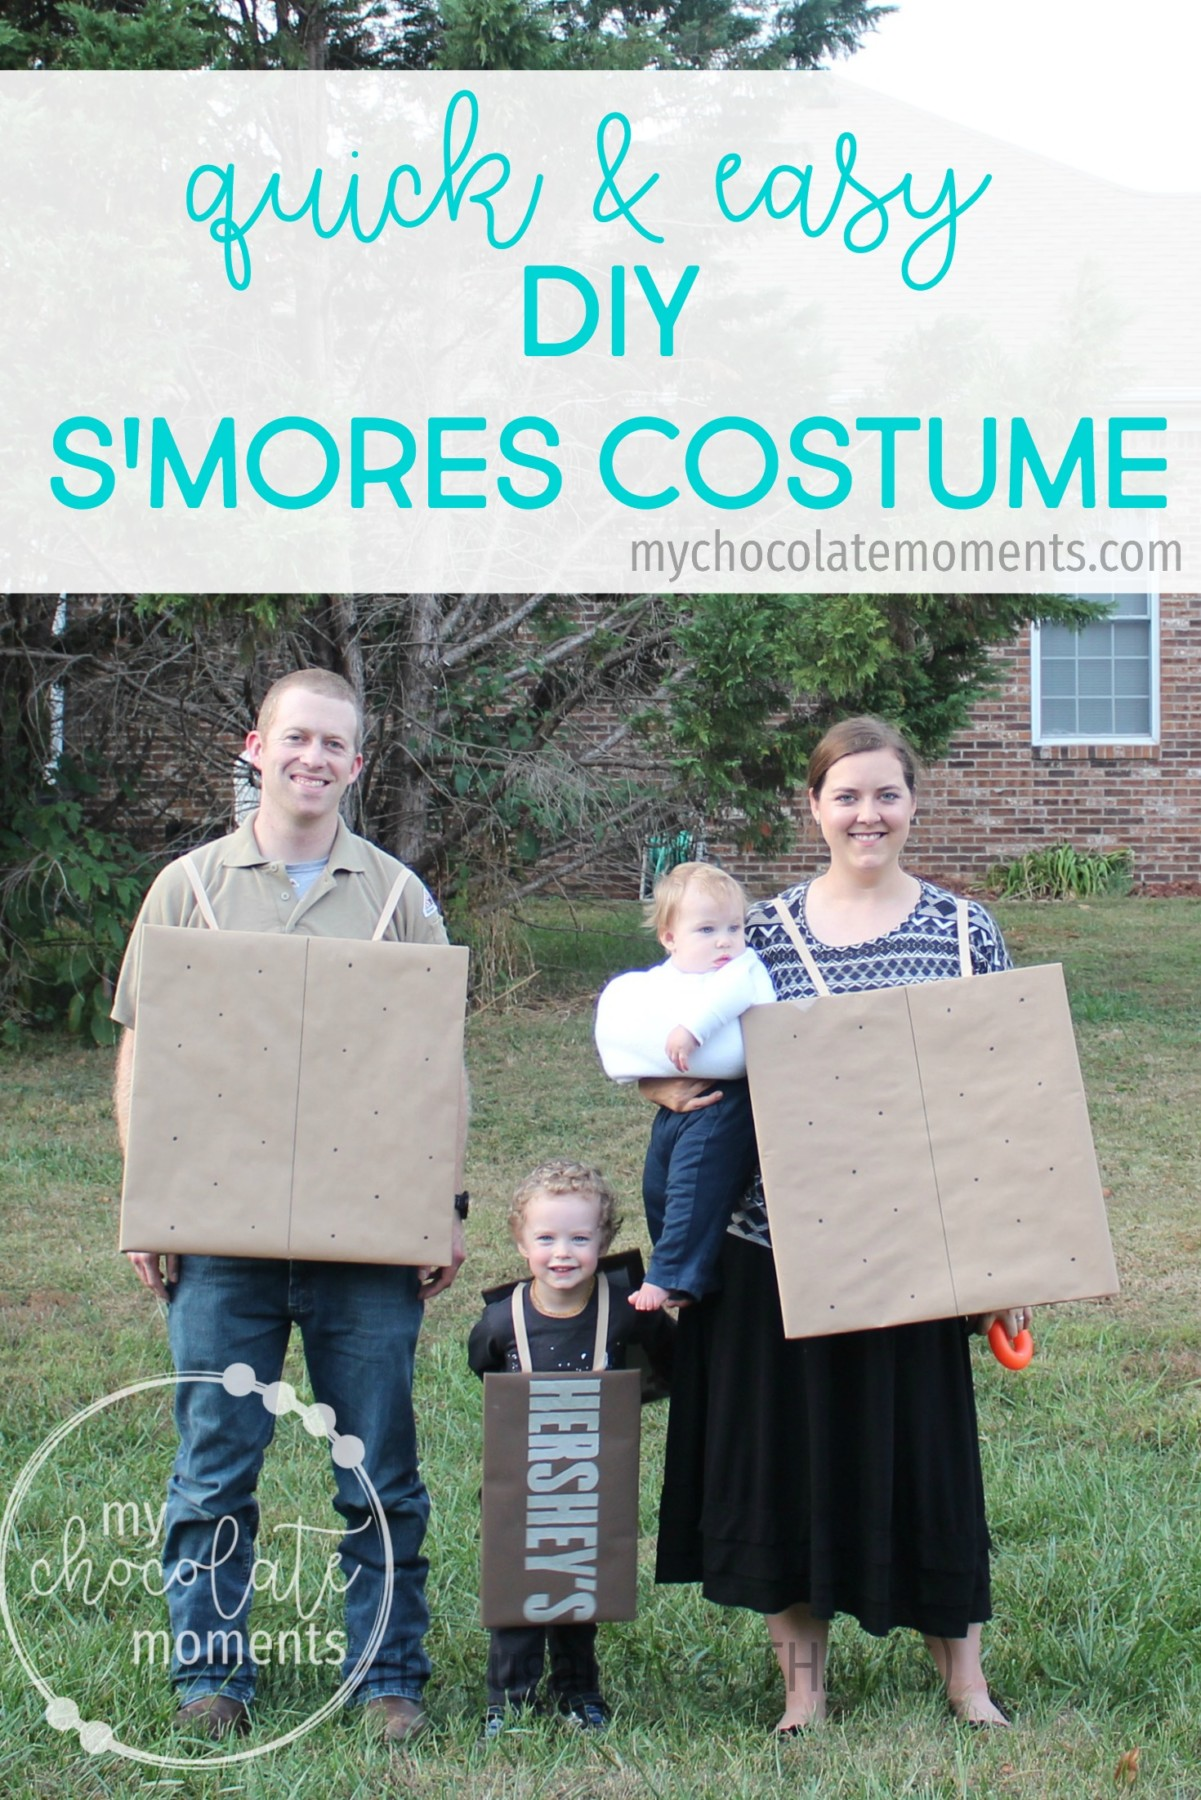 DIY s'mores costume for the whole family - super quick, easy, and inexpensive to make!